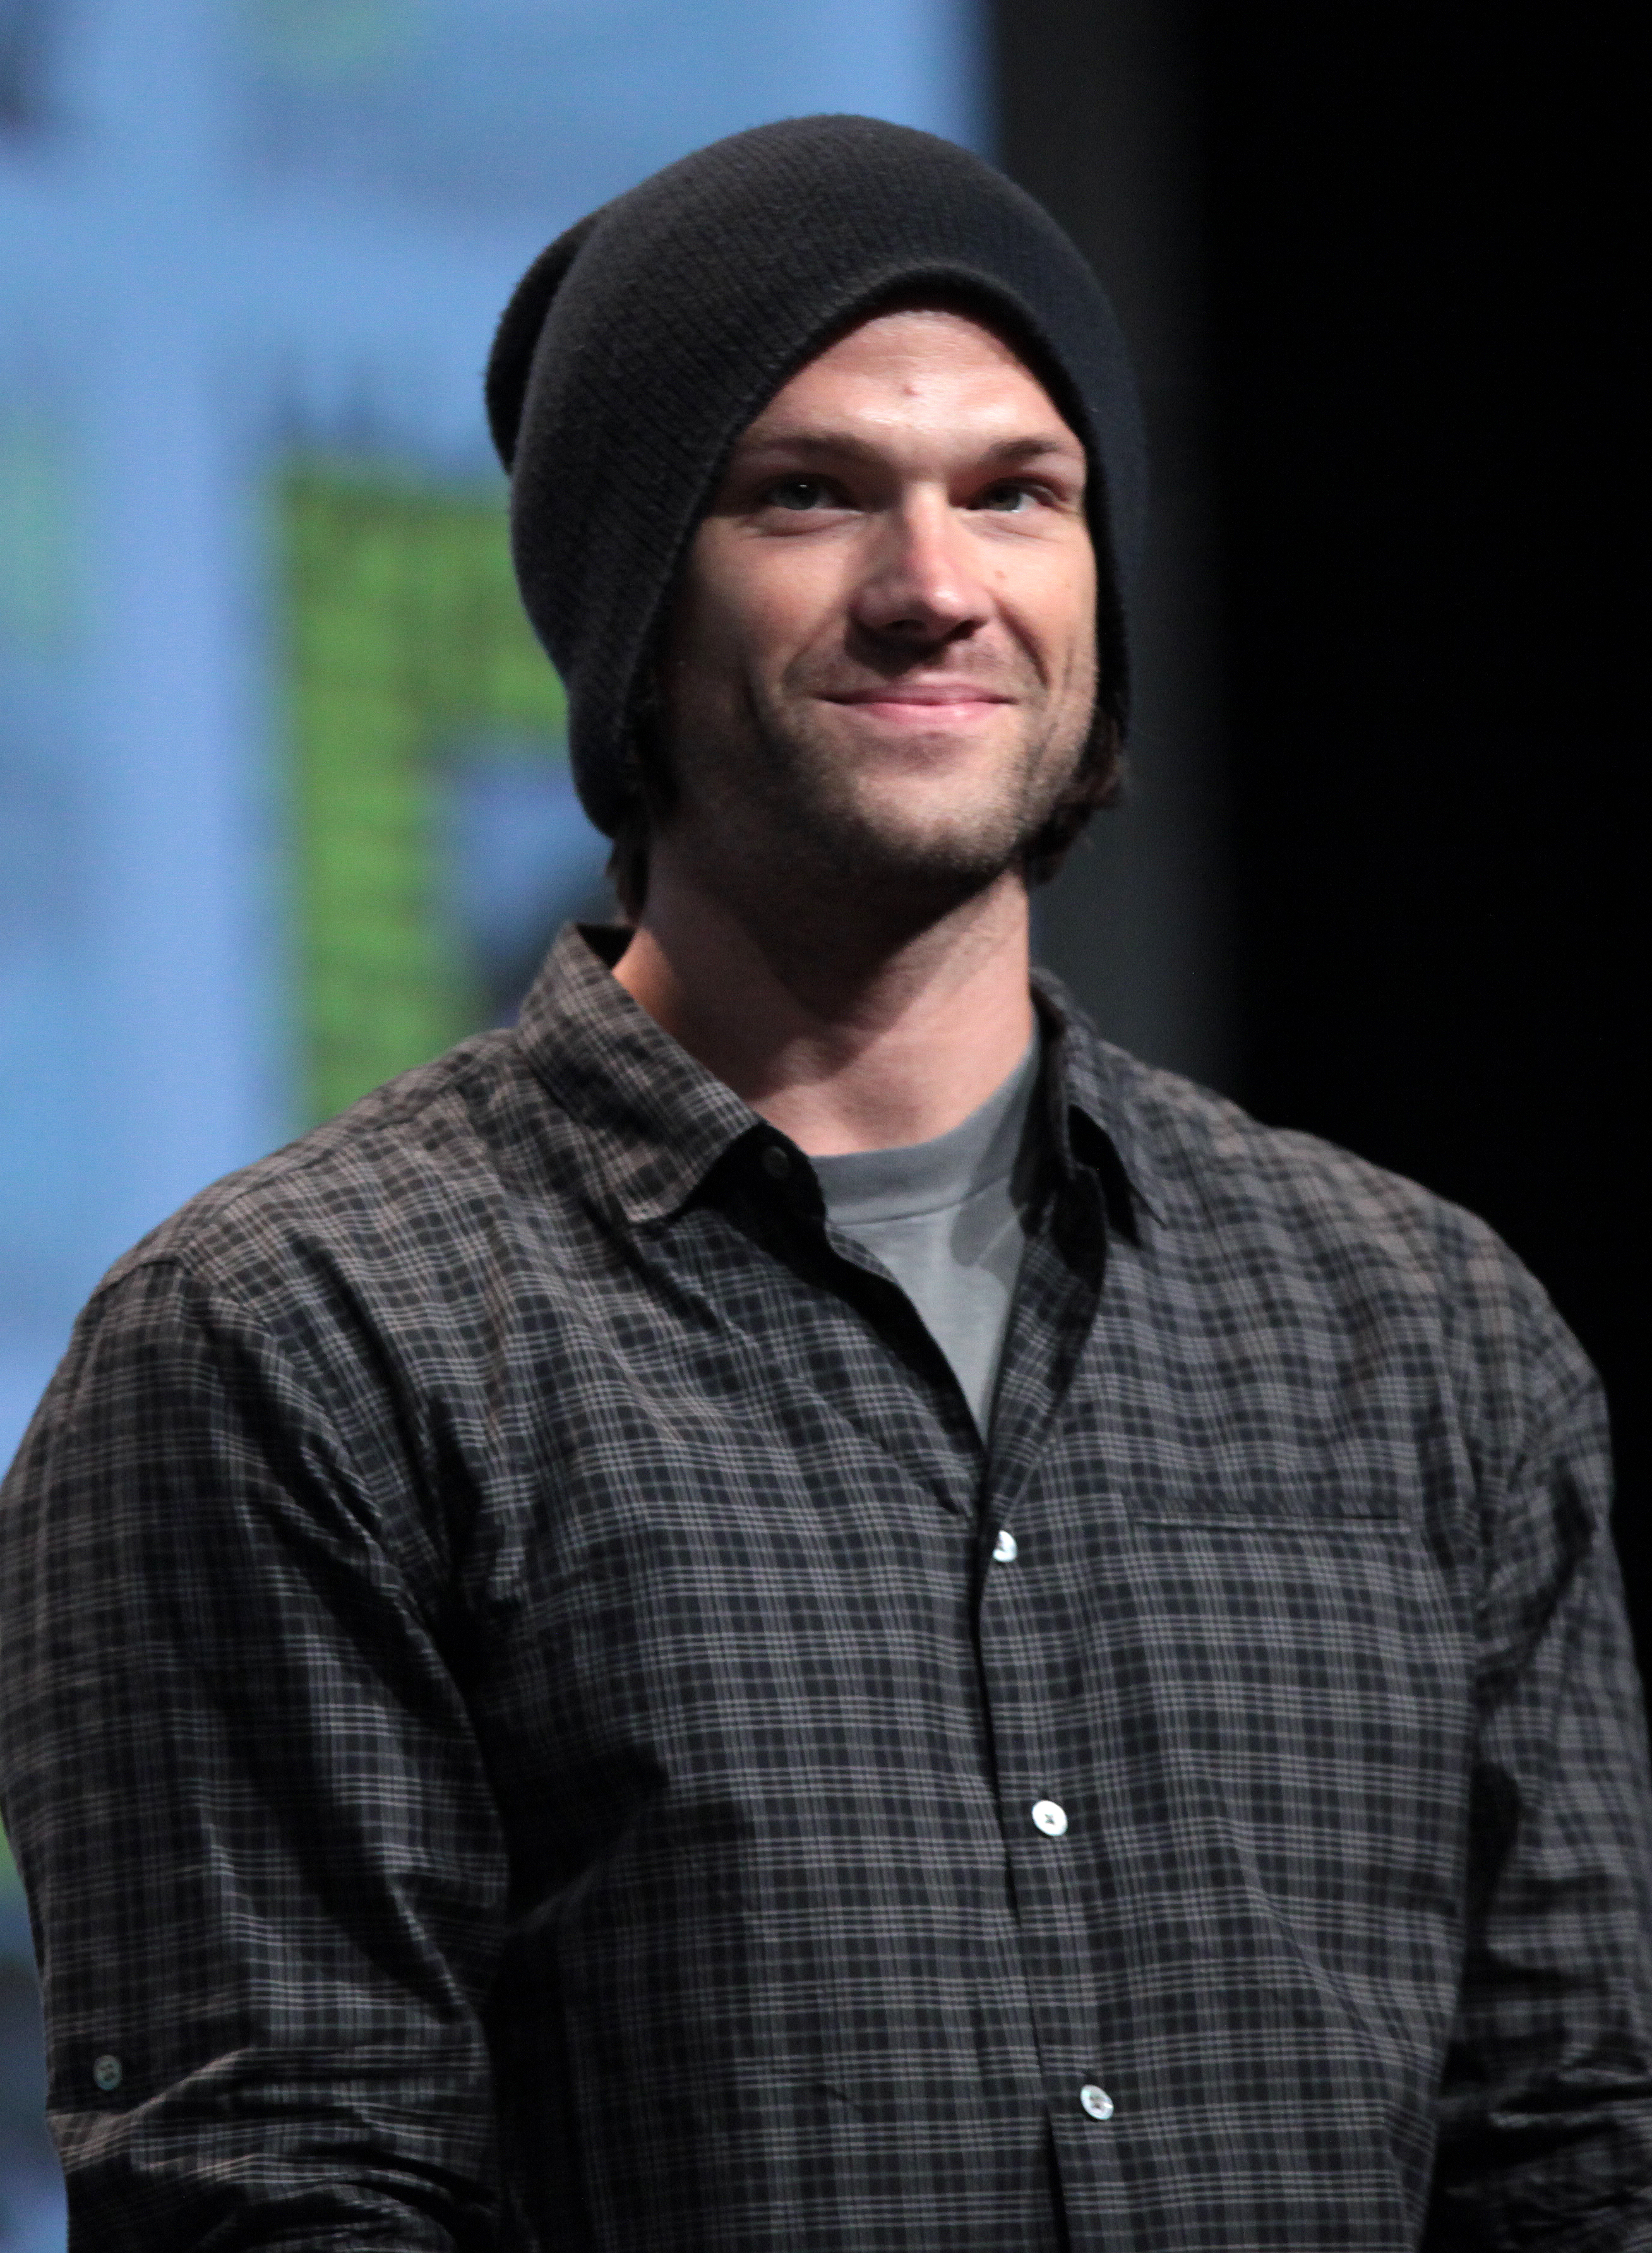 File:Jared Padalecki by Gage Skidmore 3.jpg - Wikimedia Commons